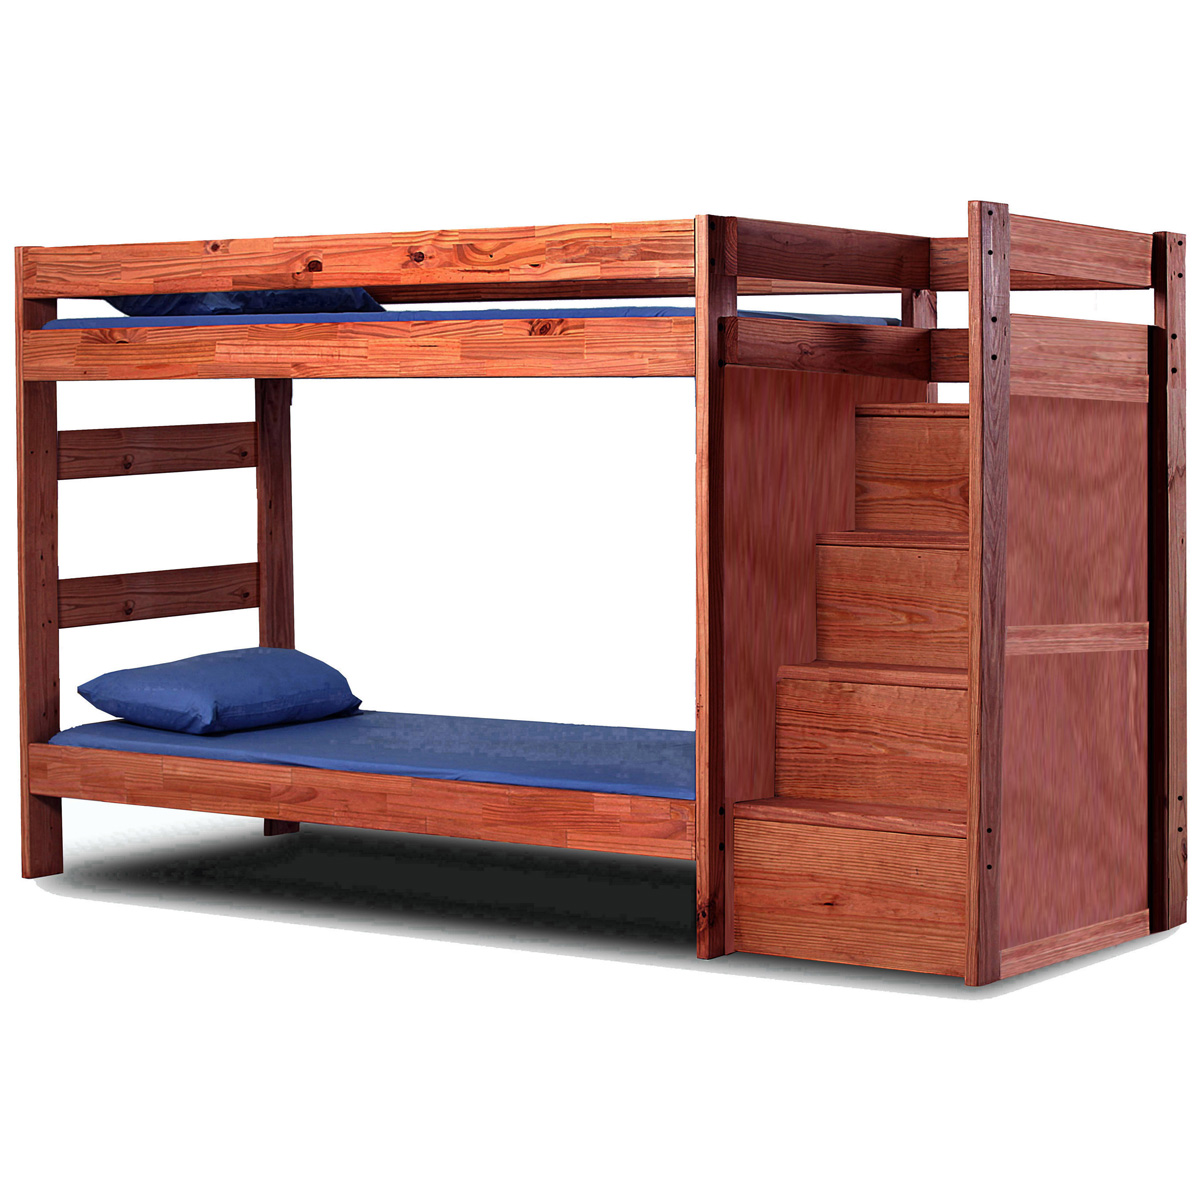 Twin Bunk Bed - Staircase, Mahogany Finish - CHF-31123